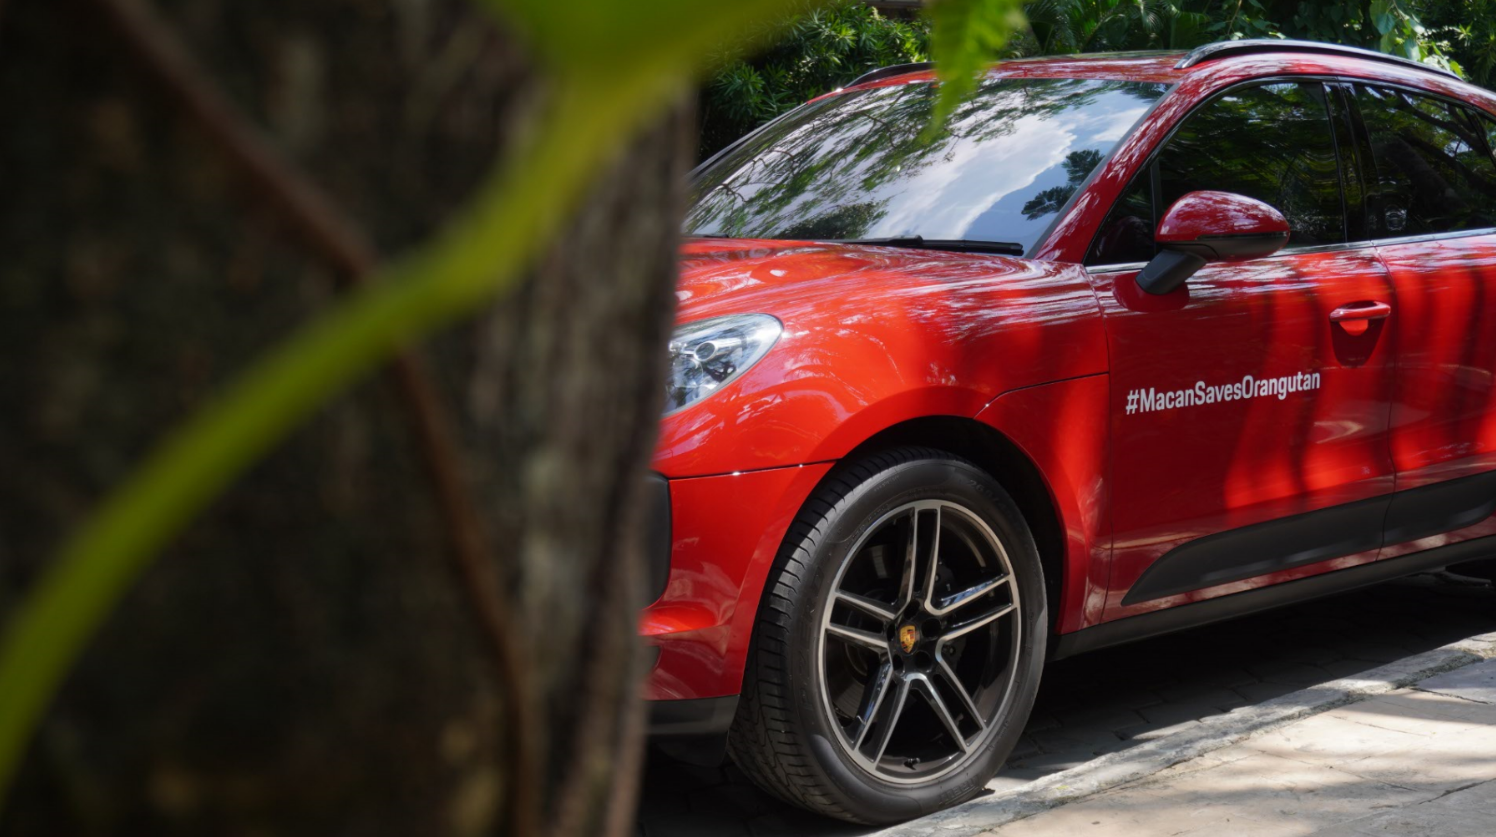 Competitors were given clues to locate the hidden Porsche Macan